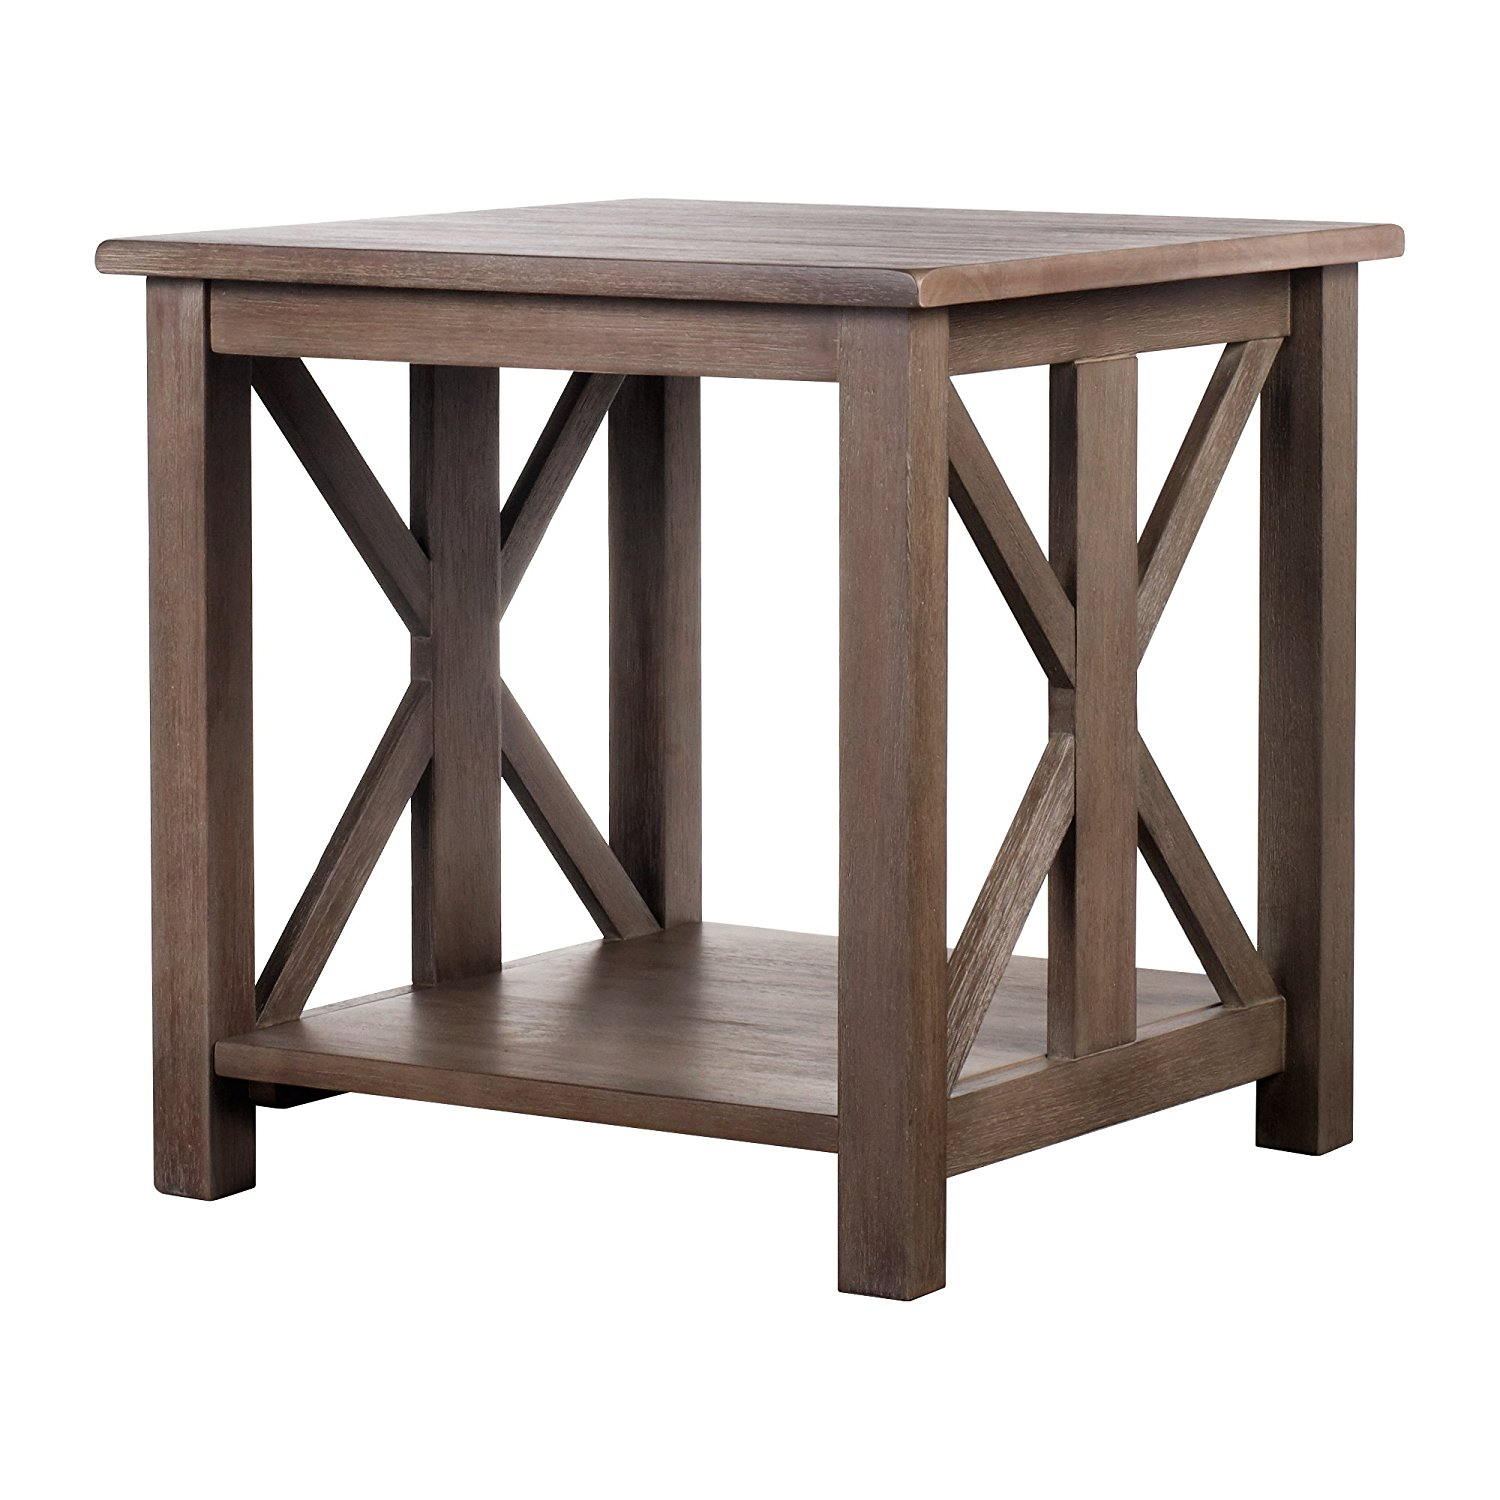 Farmhouse End Table Decor IdeasDecor Ideas : Farmhouse End Table from icanhasgif.com size 1500 x 1500 jpeg 201kB